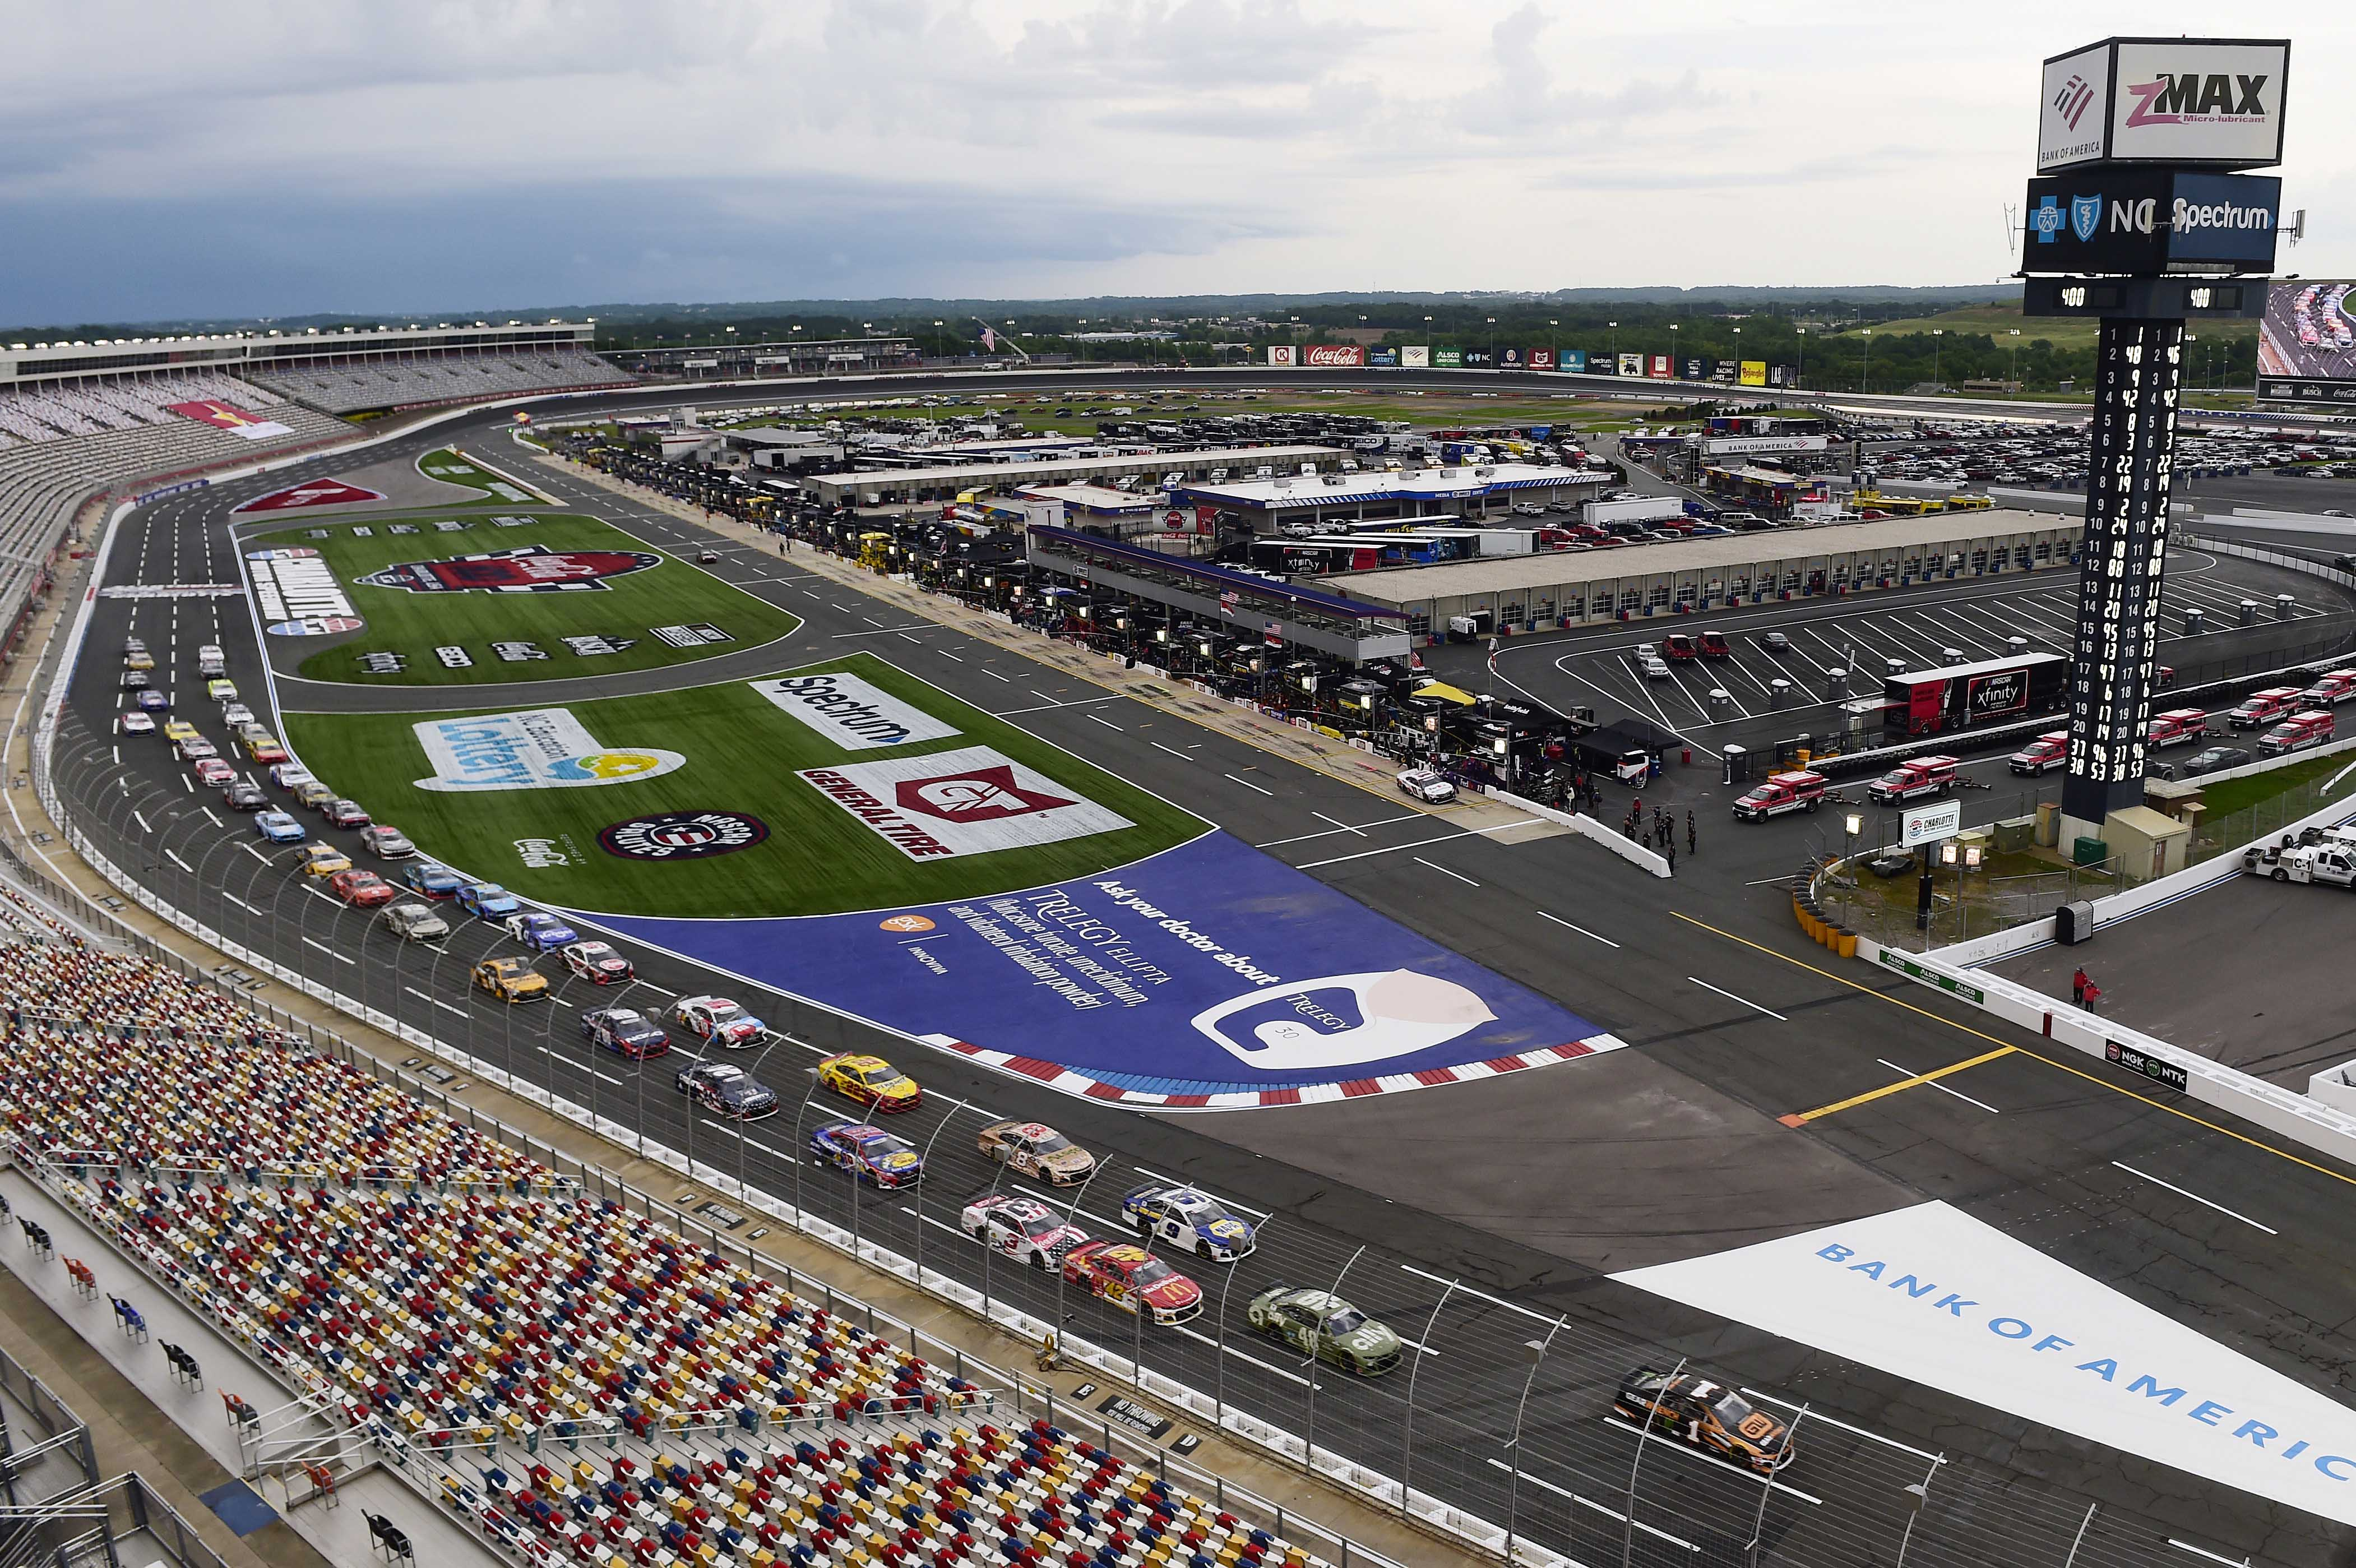 NASCAR Cup Series without fans in the grandstands at Charlotte Motor Speedway - Coca-Cola 600